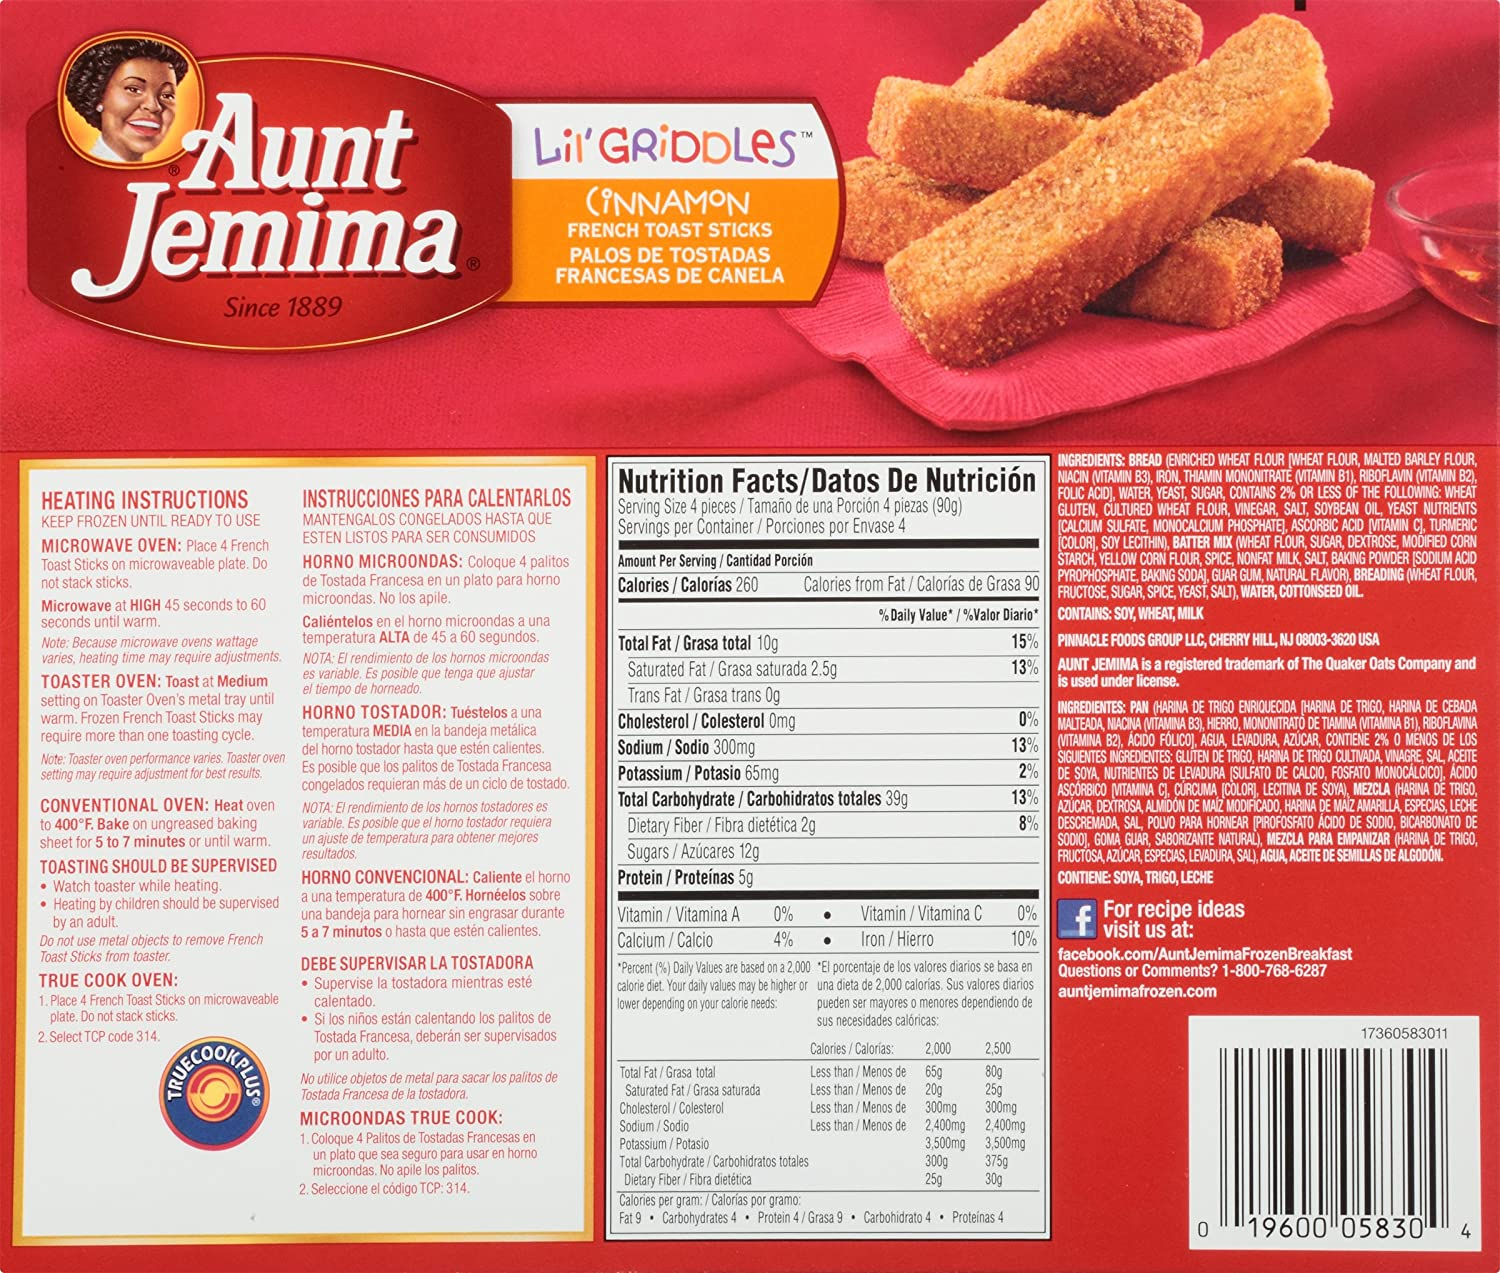 Aunt Jemima Lil Griddles, Cinnamon French Toast Sticks, 12.5 Ounce (Frozen): Amazon.com: Grocery & Gourmet Food